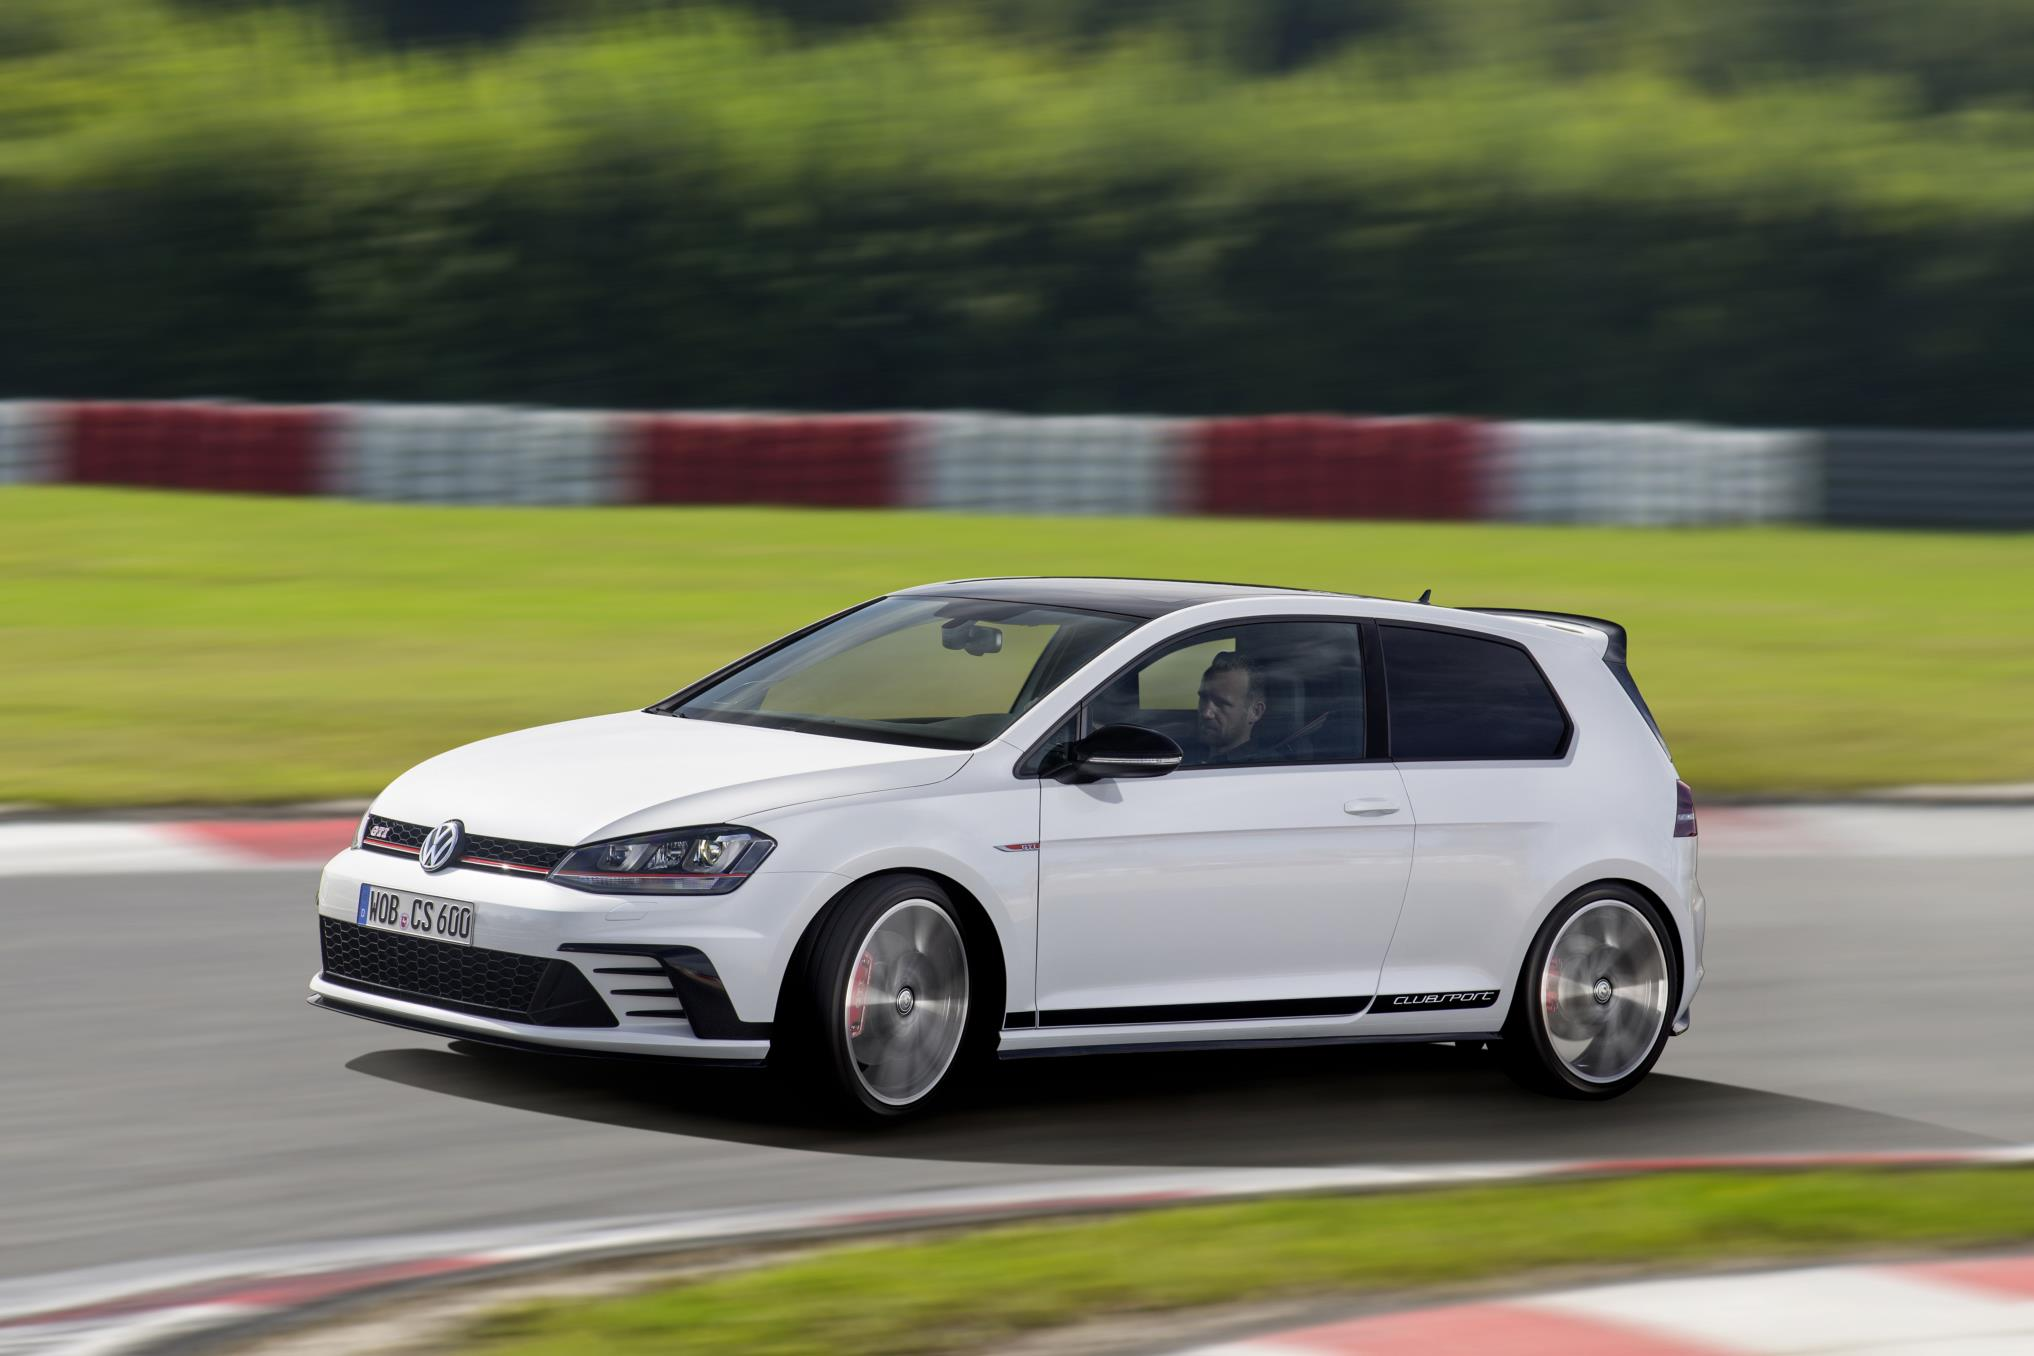 Golf Clubsport S >> Vw To Debut Golf Gti Clubsport S At Worthersee 2016 Gtspirit